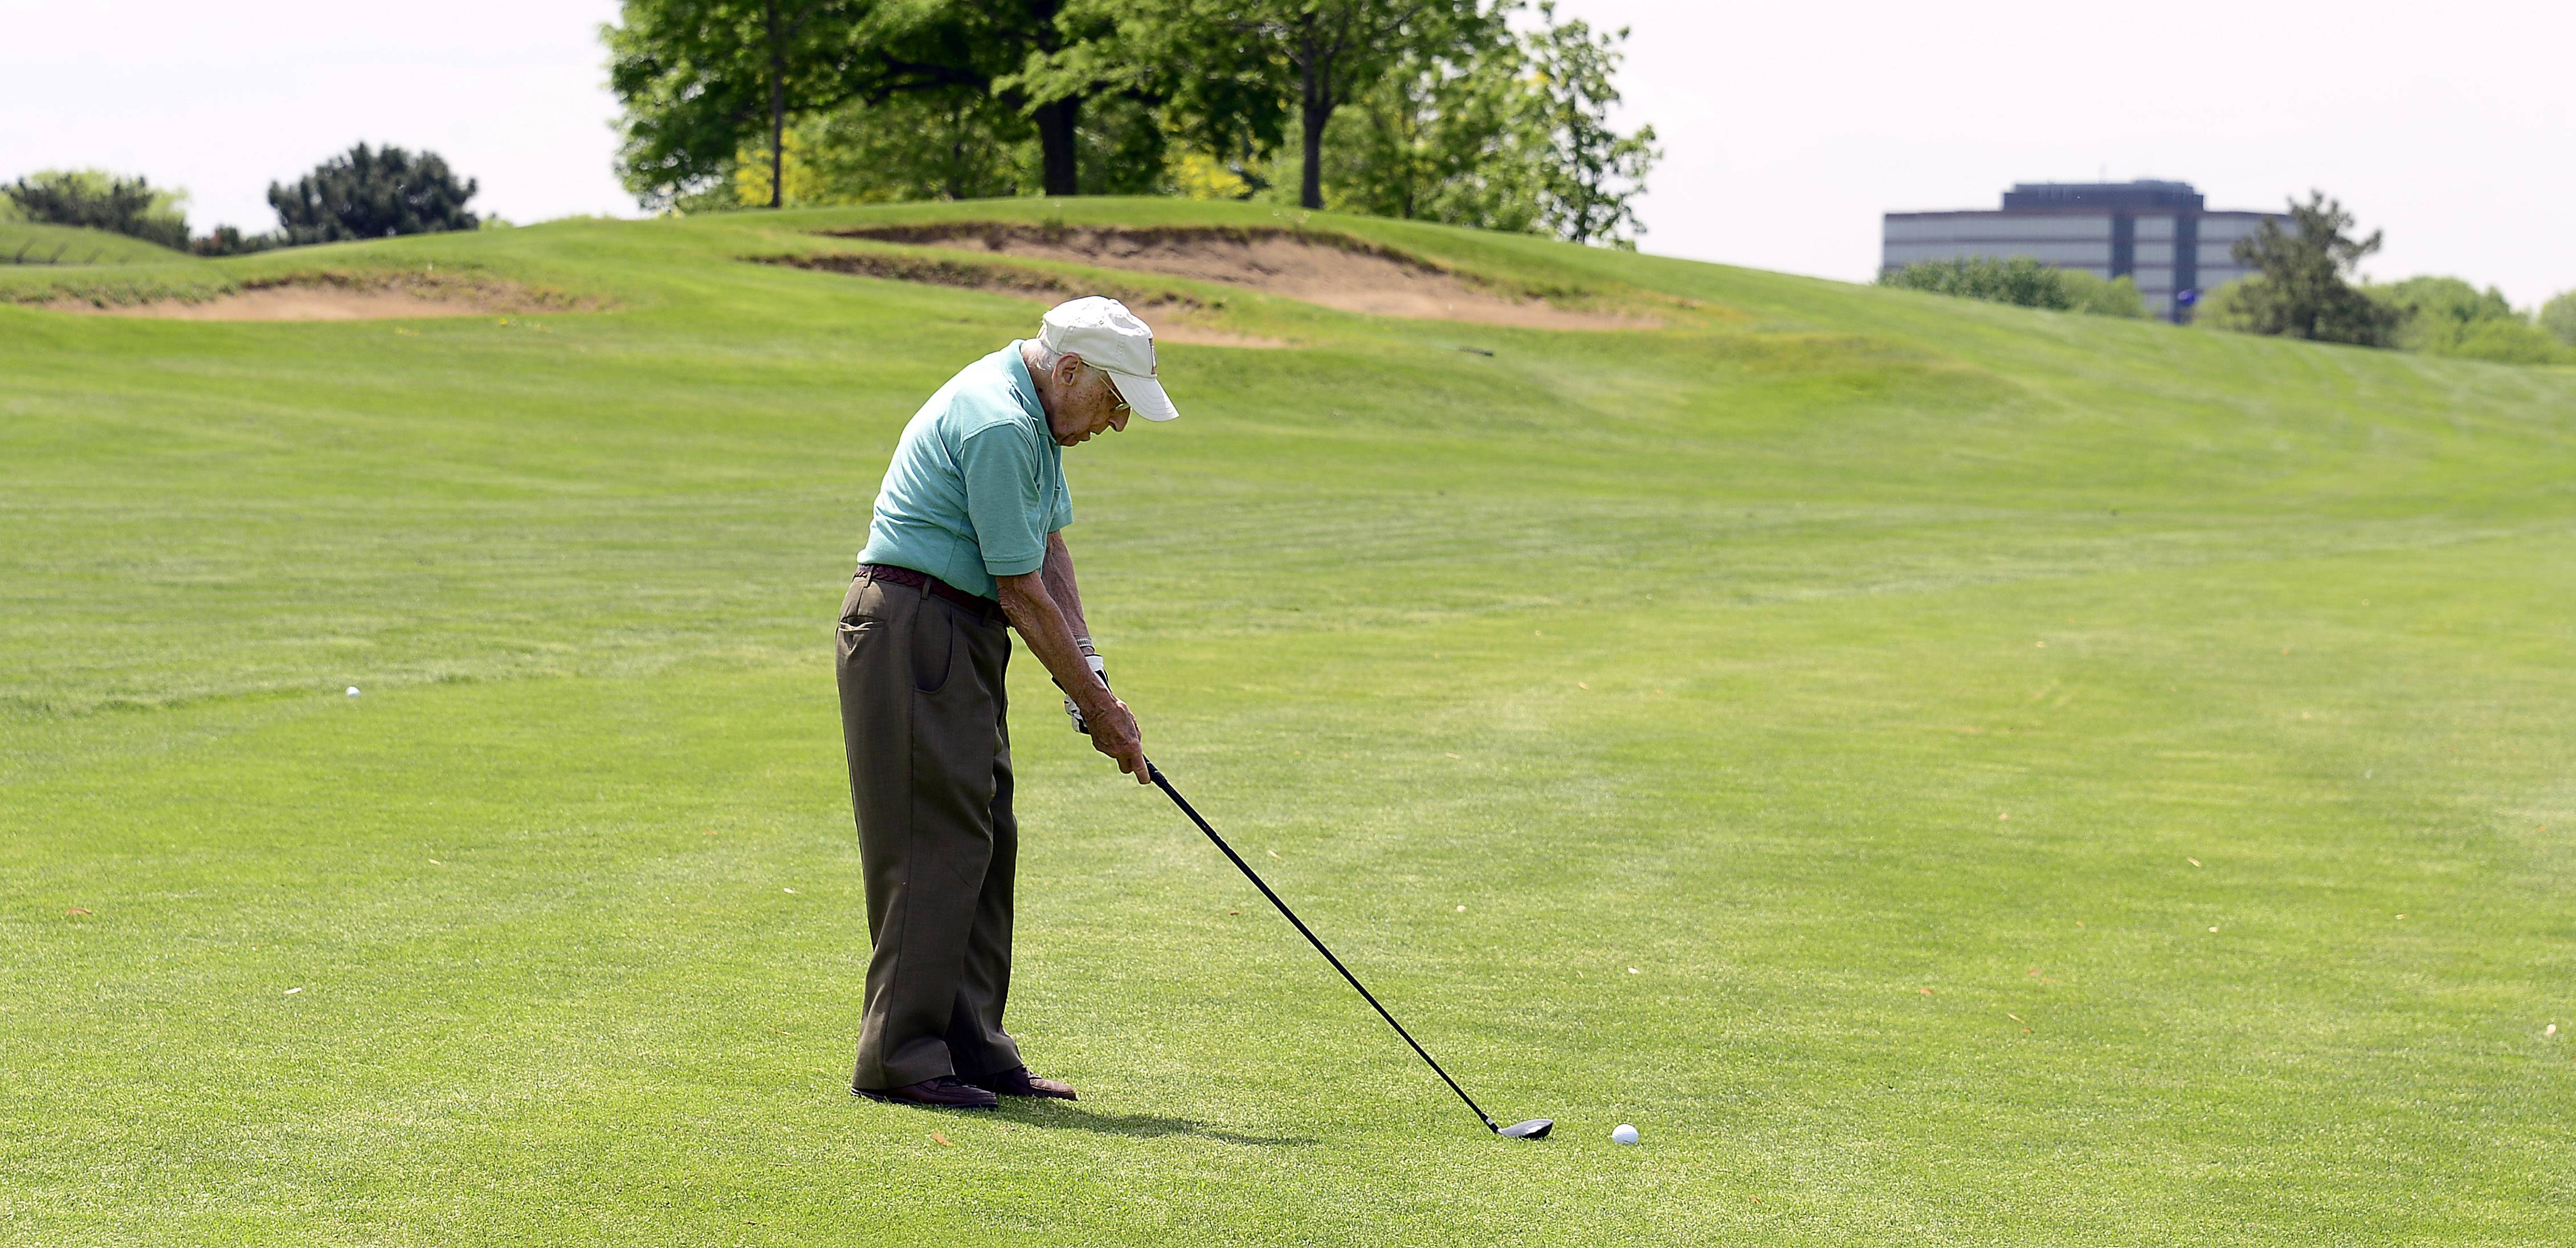 Hitting the ball straight almost every time helps golfer Dick Muhlethaler stay competitive at age 103. He and golfing partner Dick Breeden, 98, play every Tuesday at Arlington Lakes Golf Club in Arlington Heights.